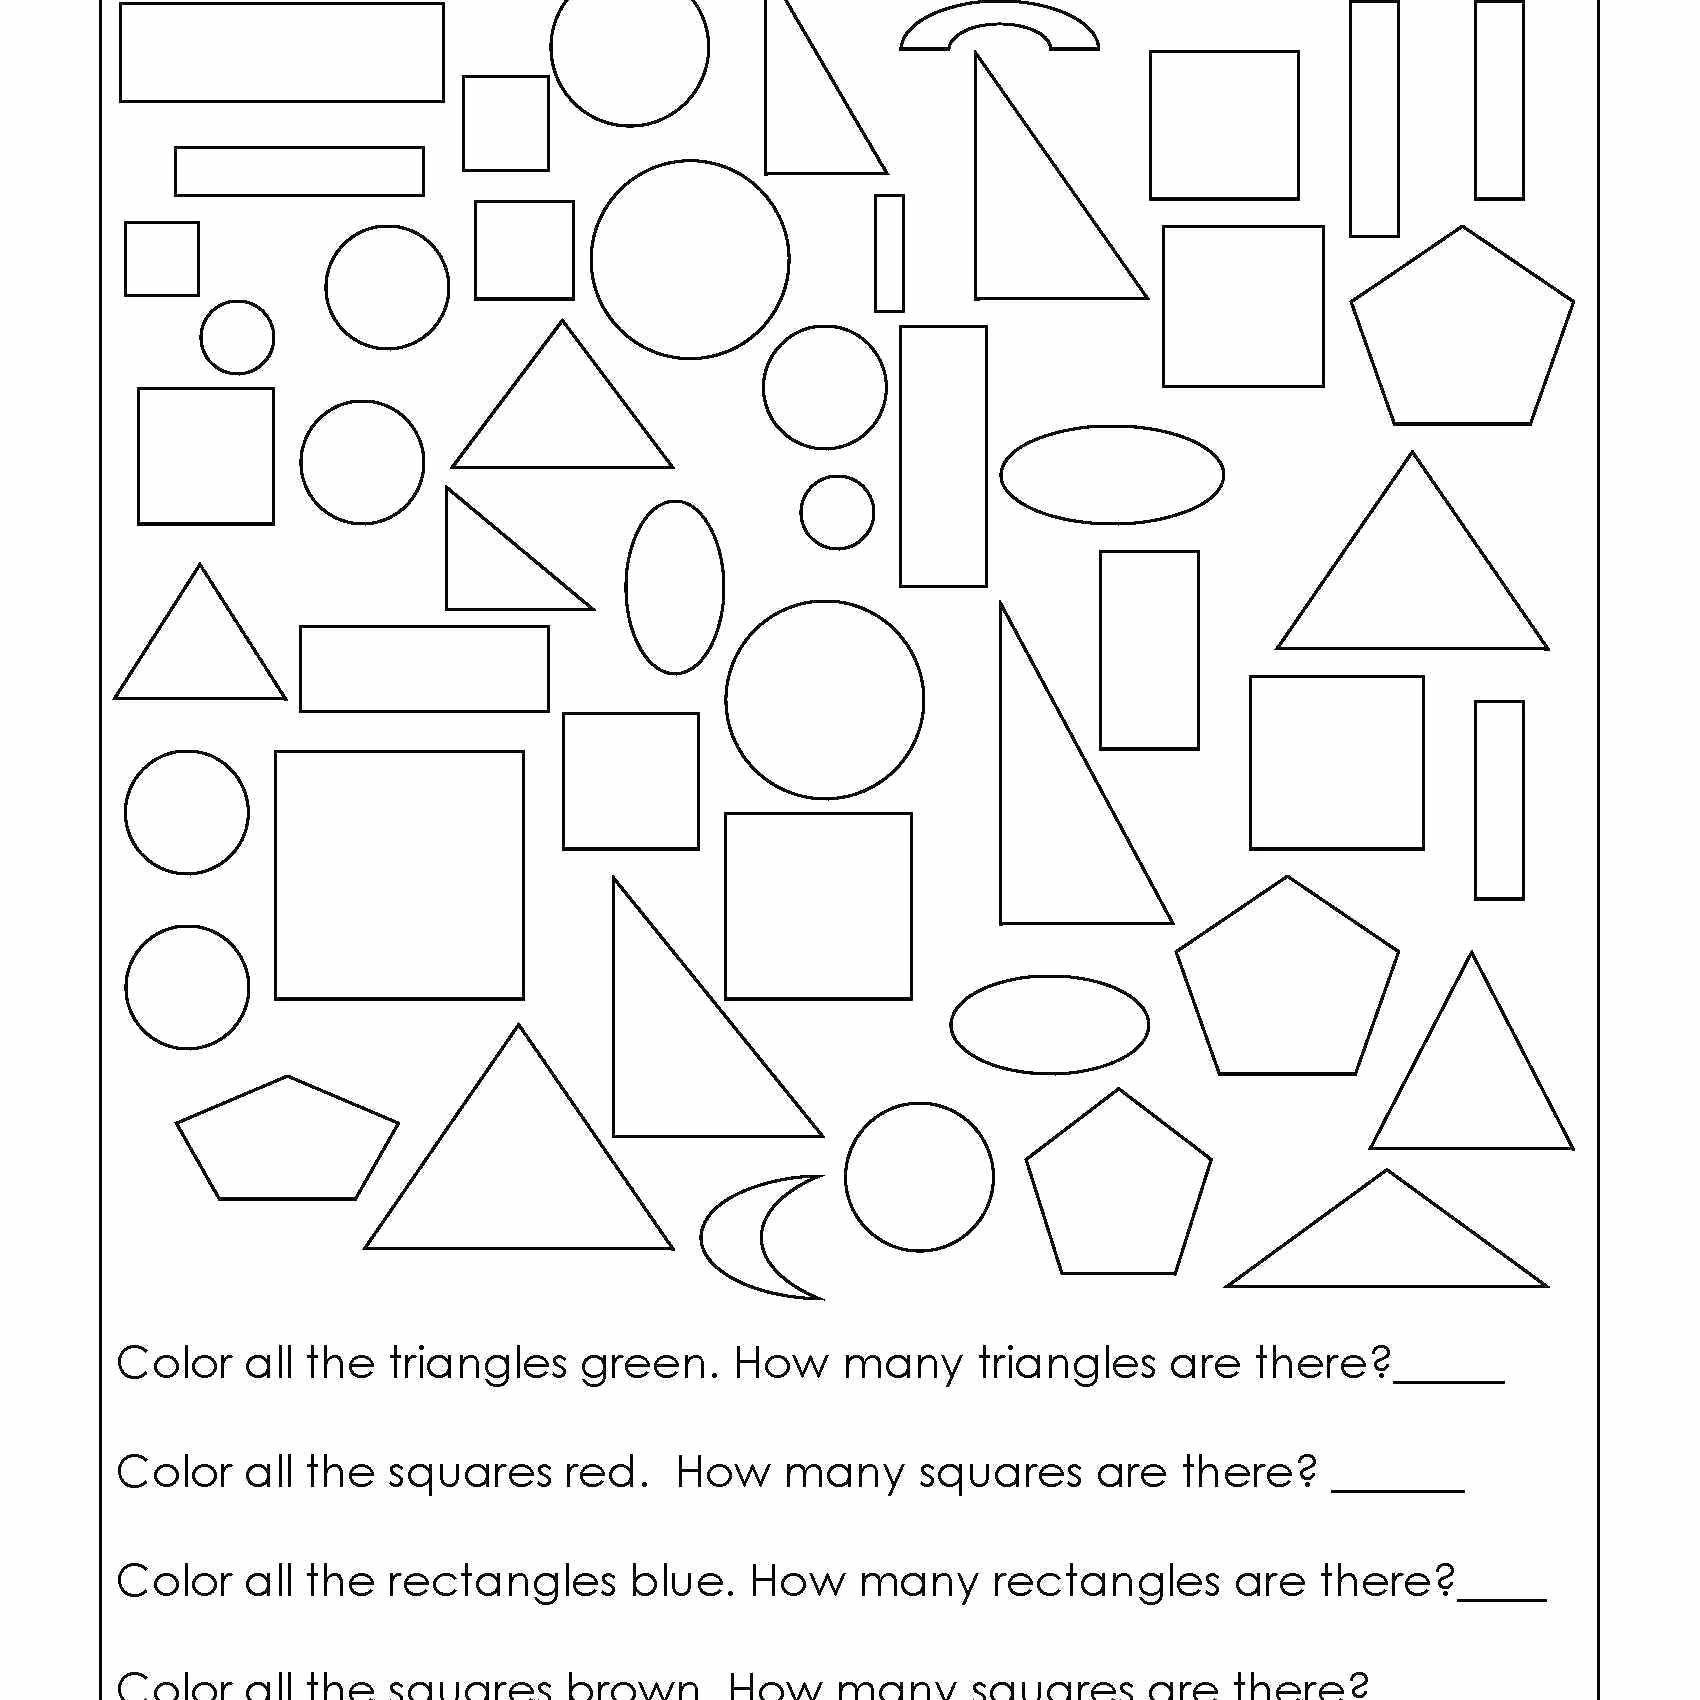 Common Core Math Worksheets 6th Grade